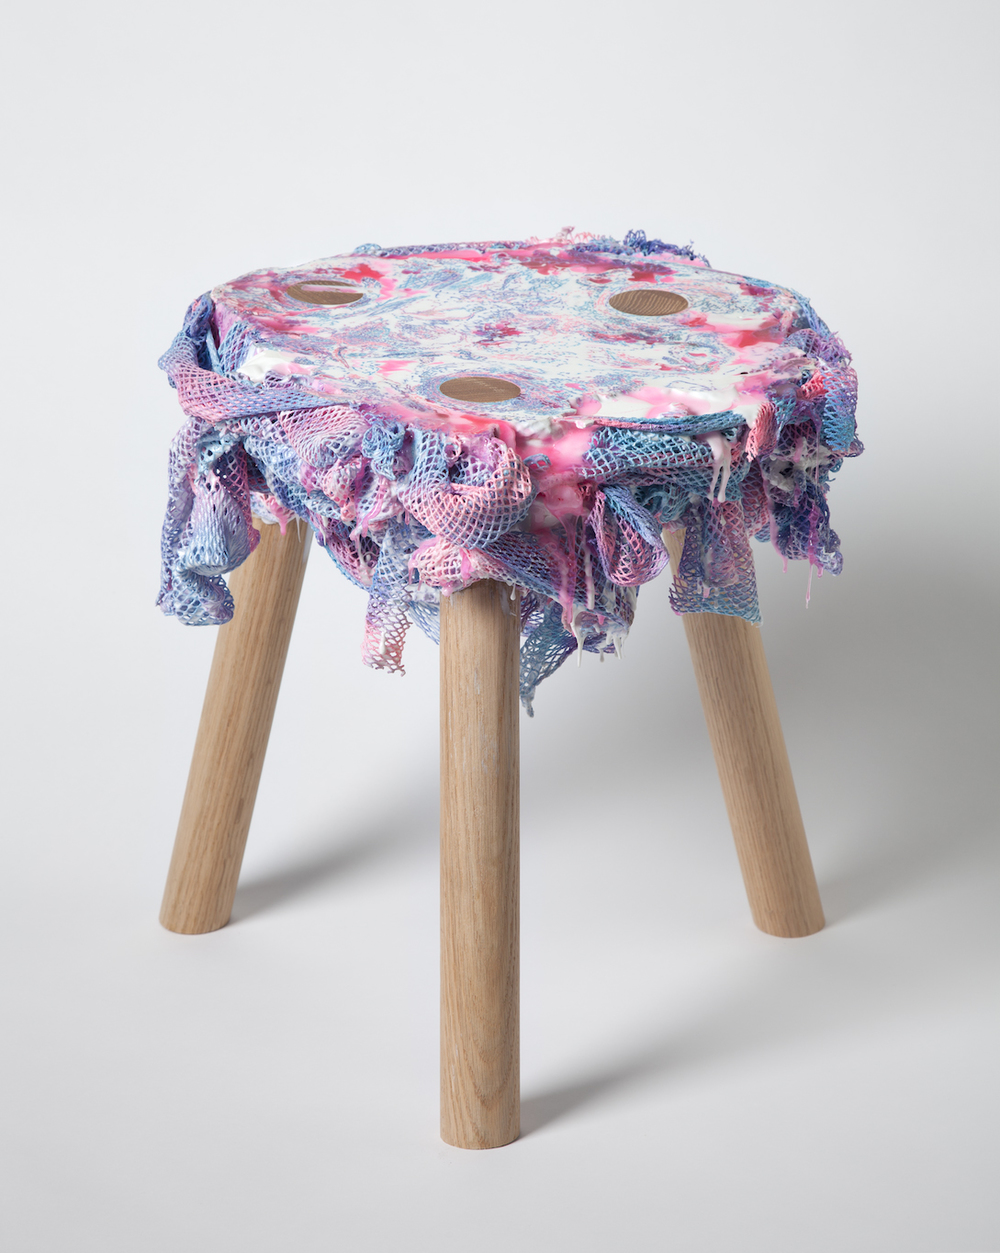 Network (stool), 2011 Chen Chen and Kai Williams. Oak, fabric, urethane resin Photo courtesy of the artists